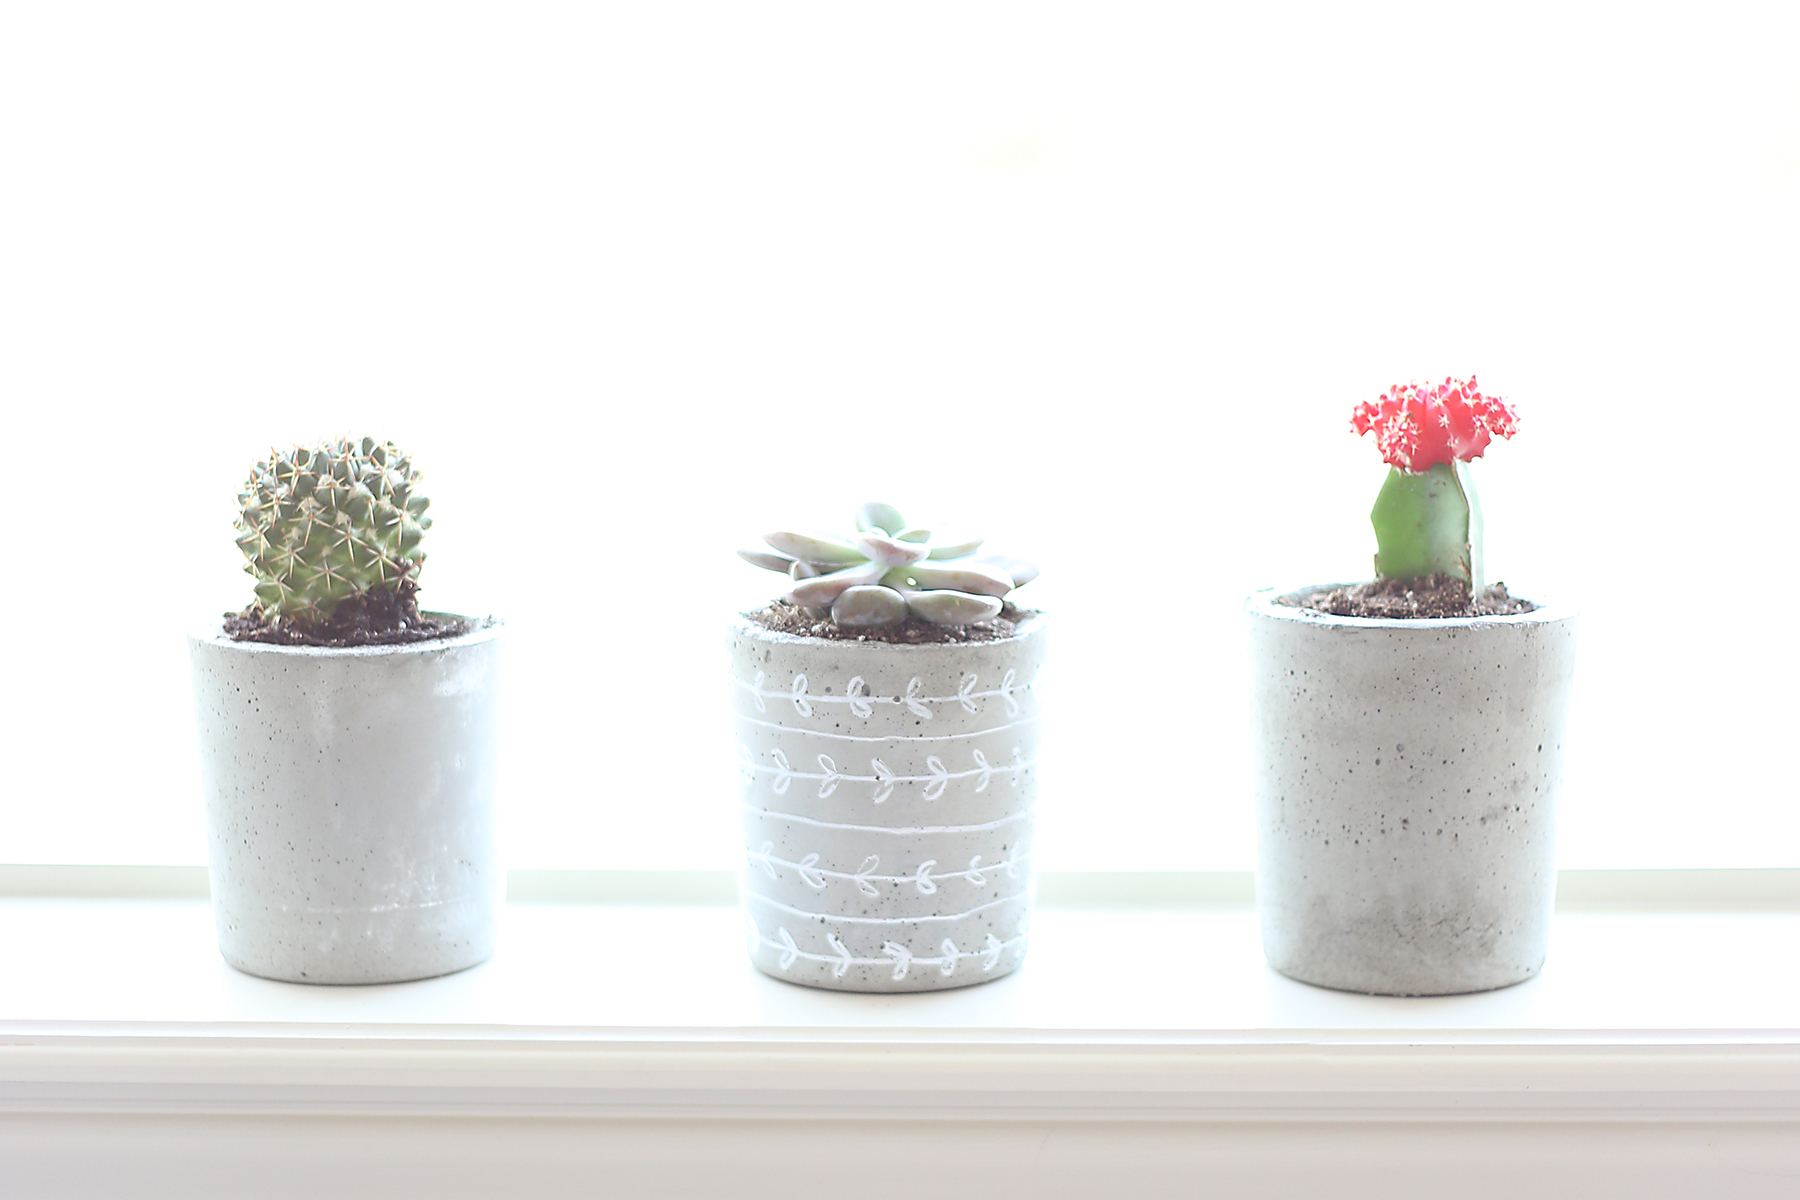 Cement Planters - Saturday, September 28th at 10amMixing and pouring your own concrete planter might seem intimidating, but we'll show you exactly what to do. You'll leave this class with a sleek, modern concrete planter finished off with a succulent of your choice, Ages 14 +